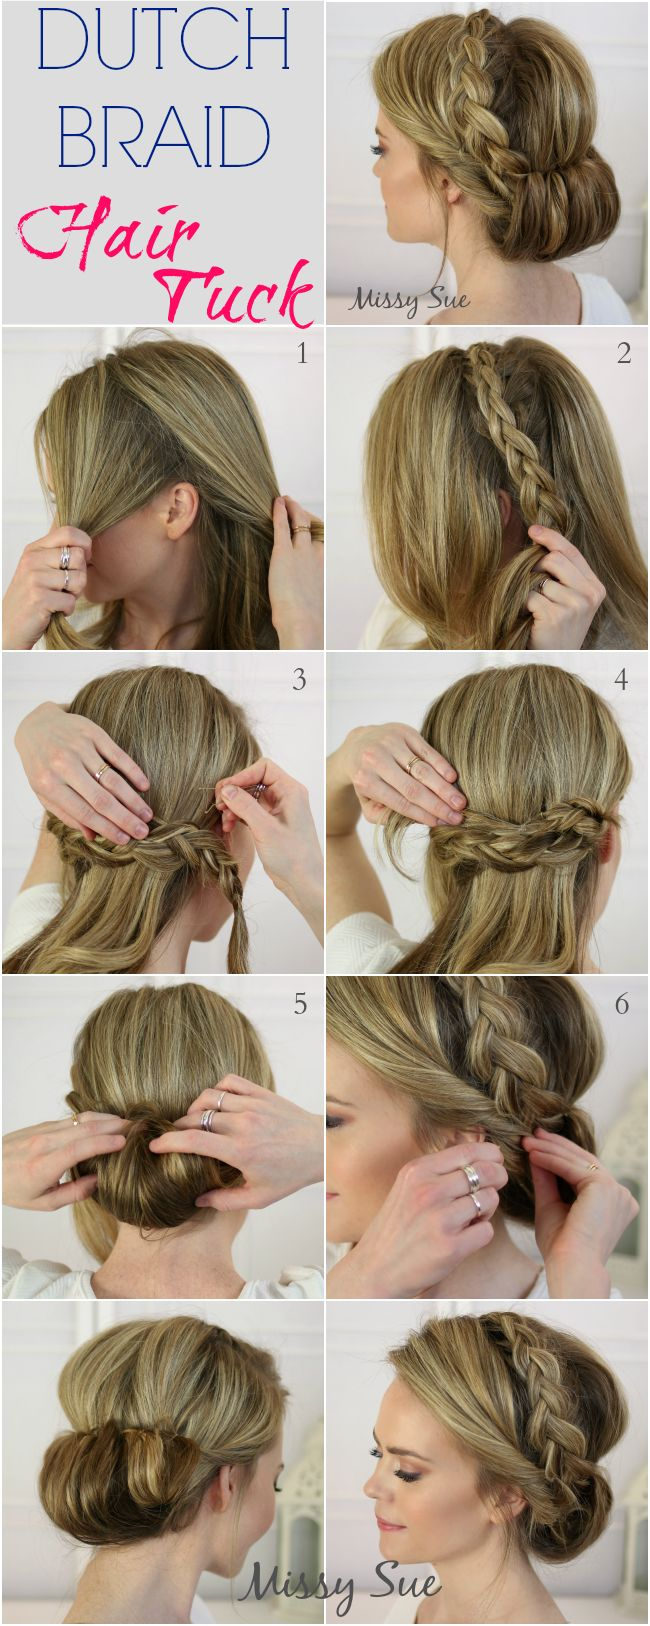 Classy Cathleen: 50 Hairstyles and Tips that every girl